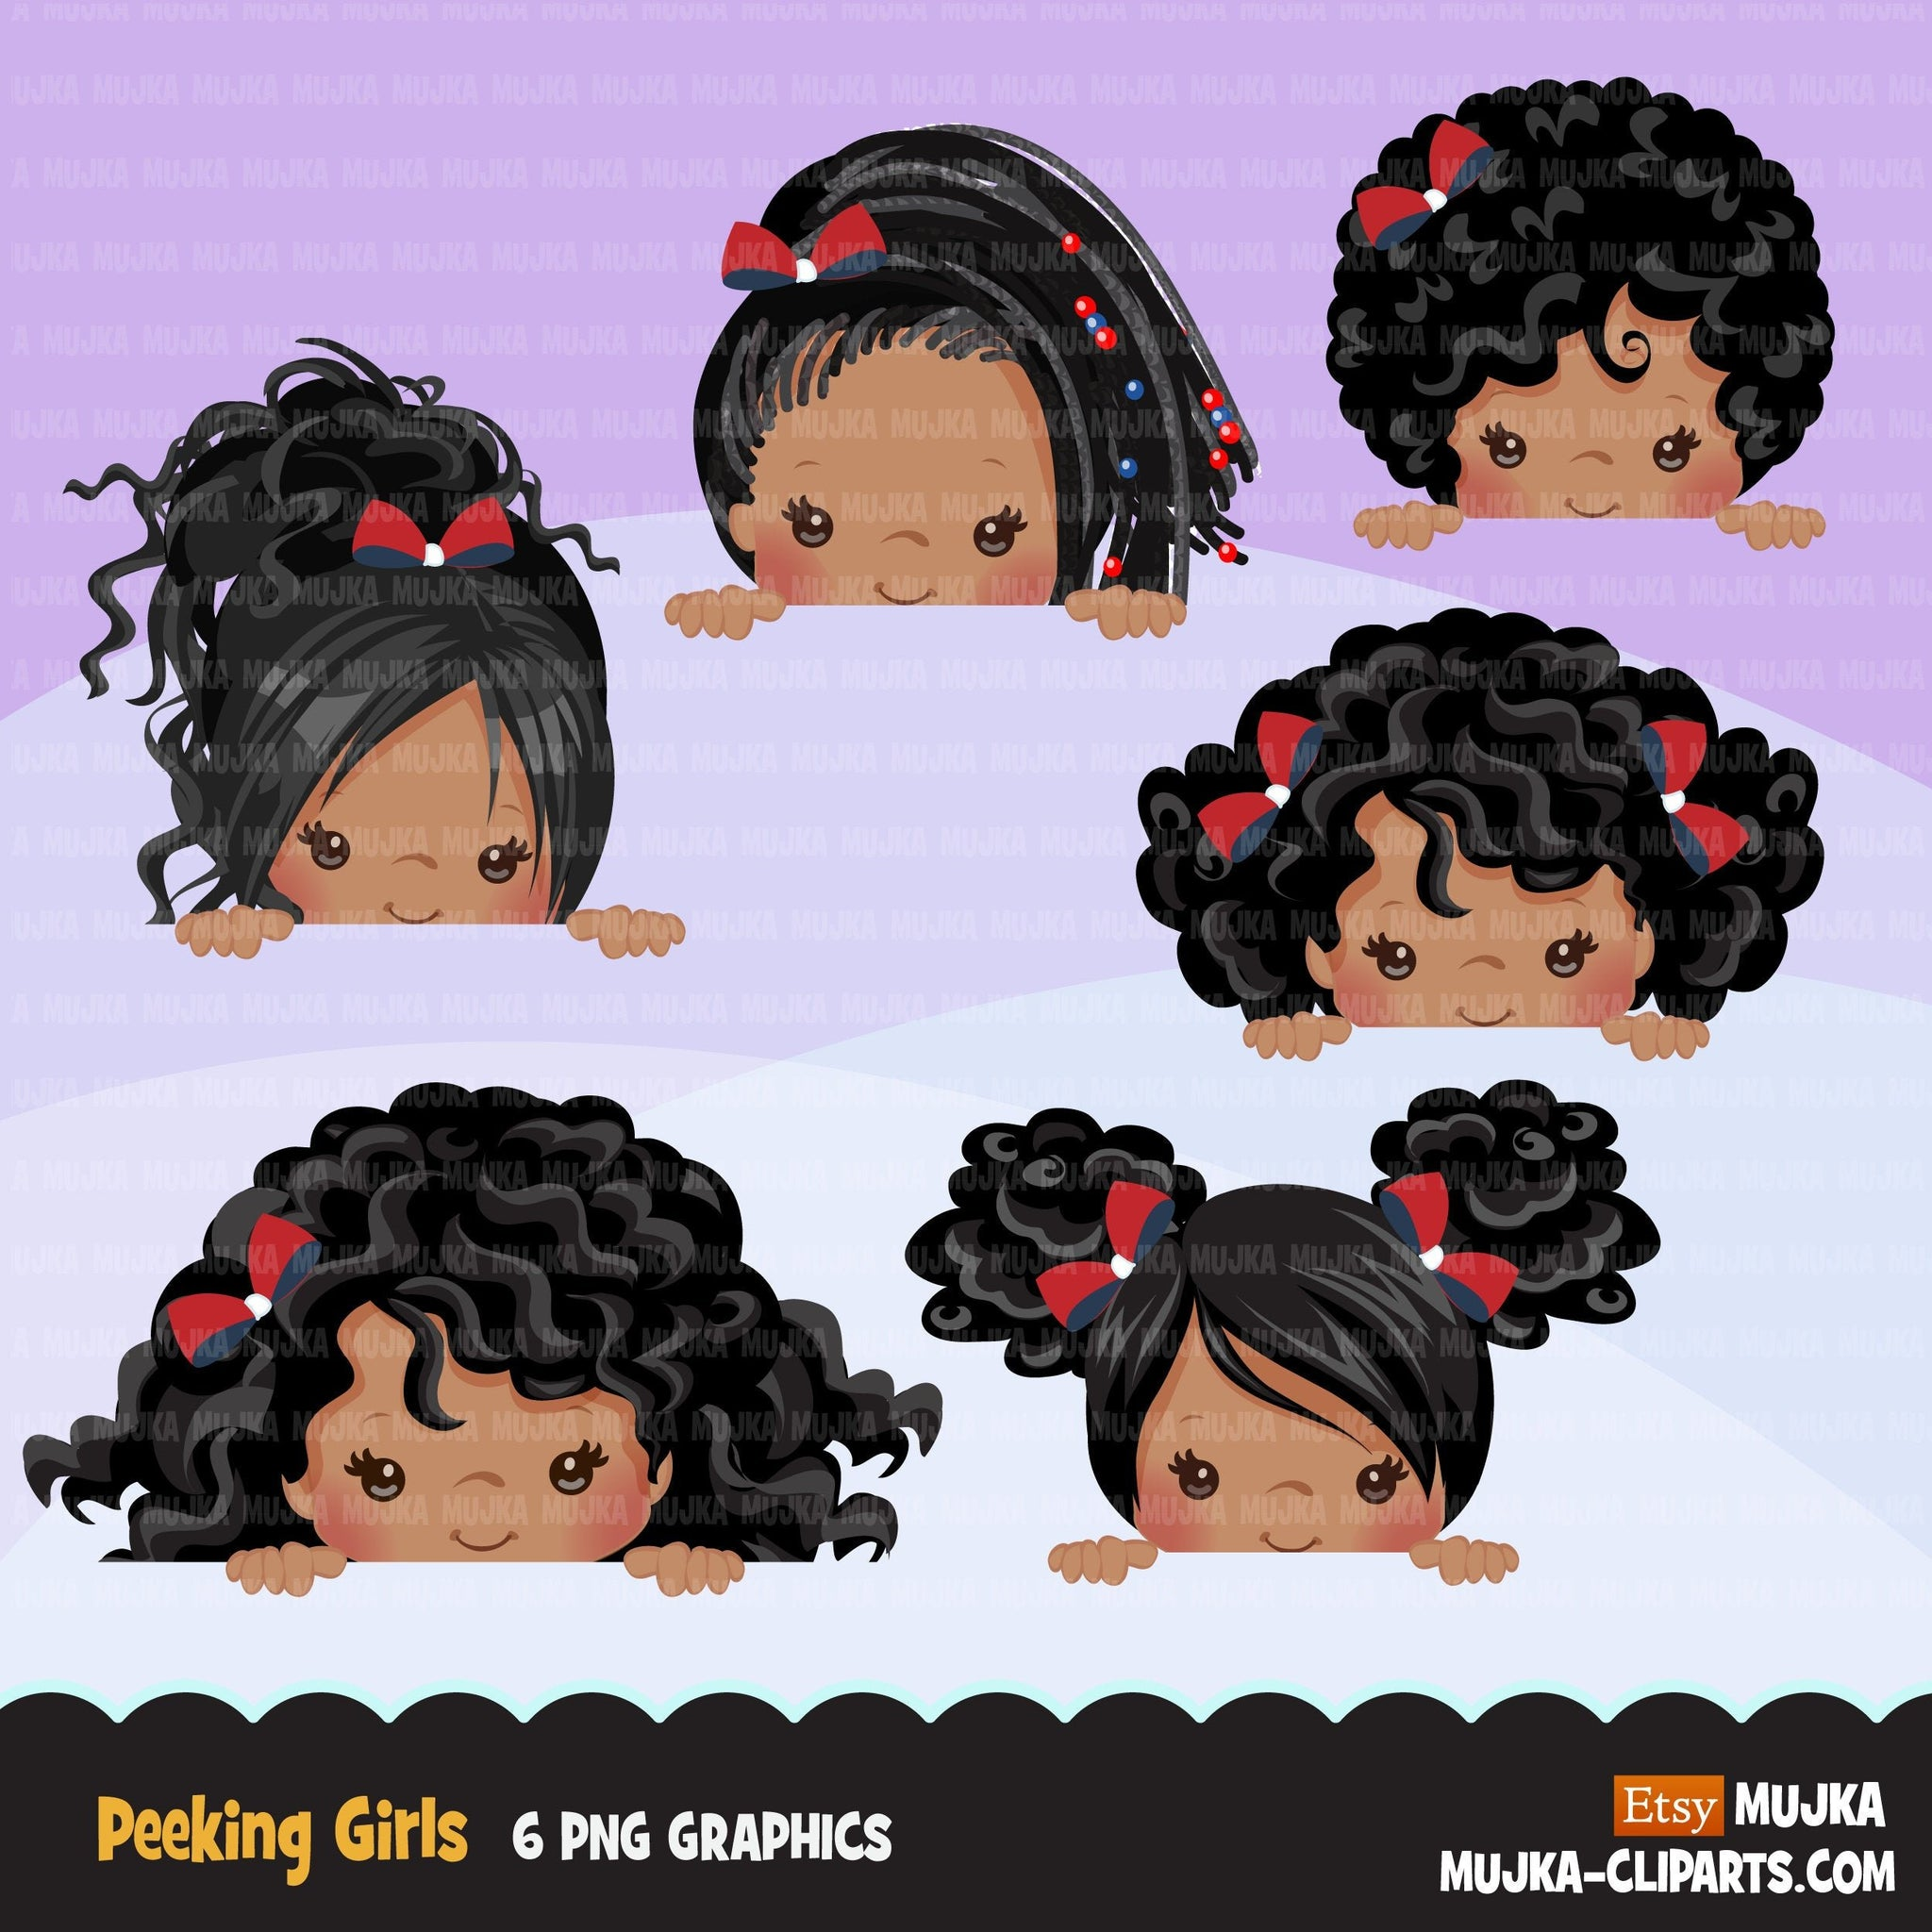 Peeking Girls Clipart black afro girls